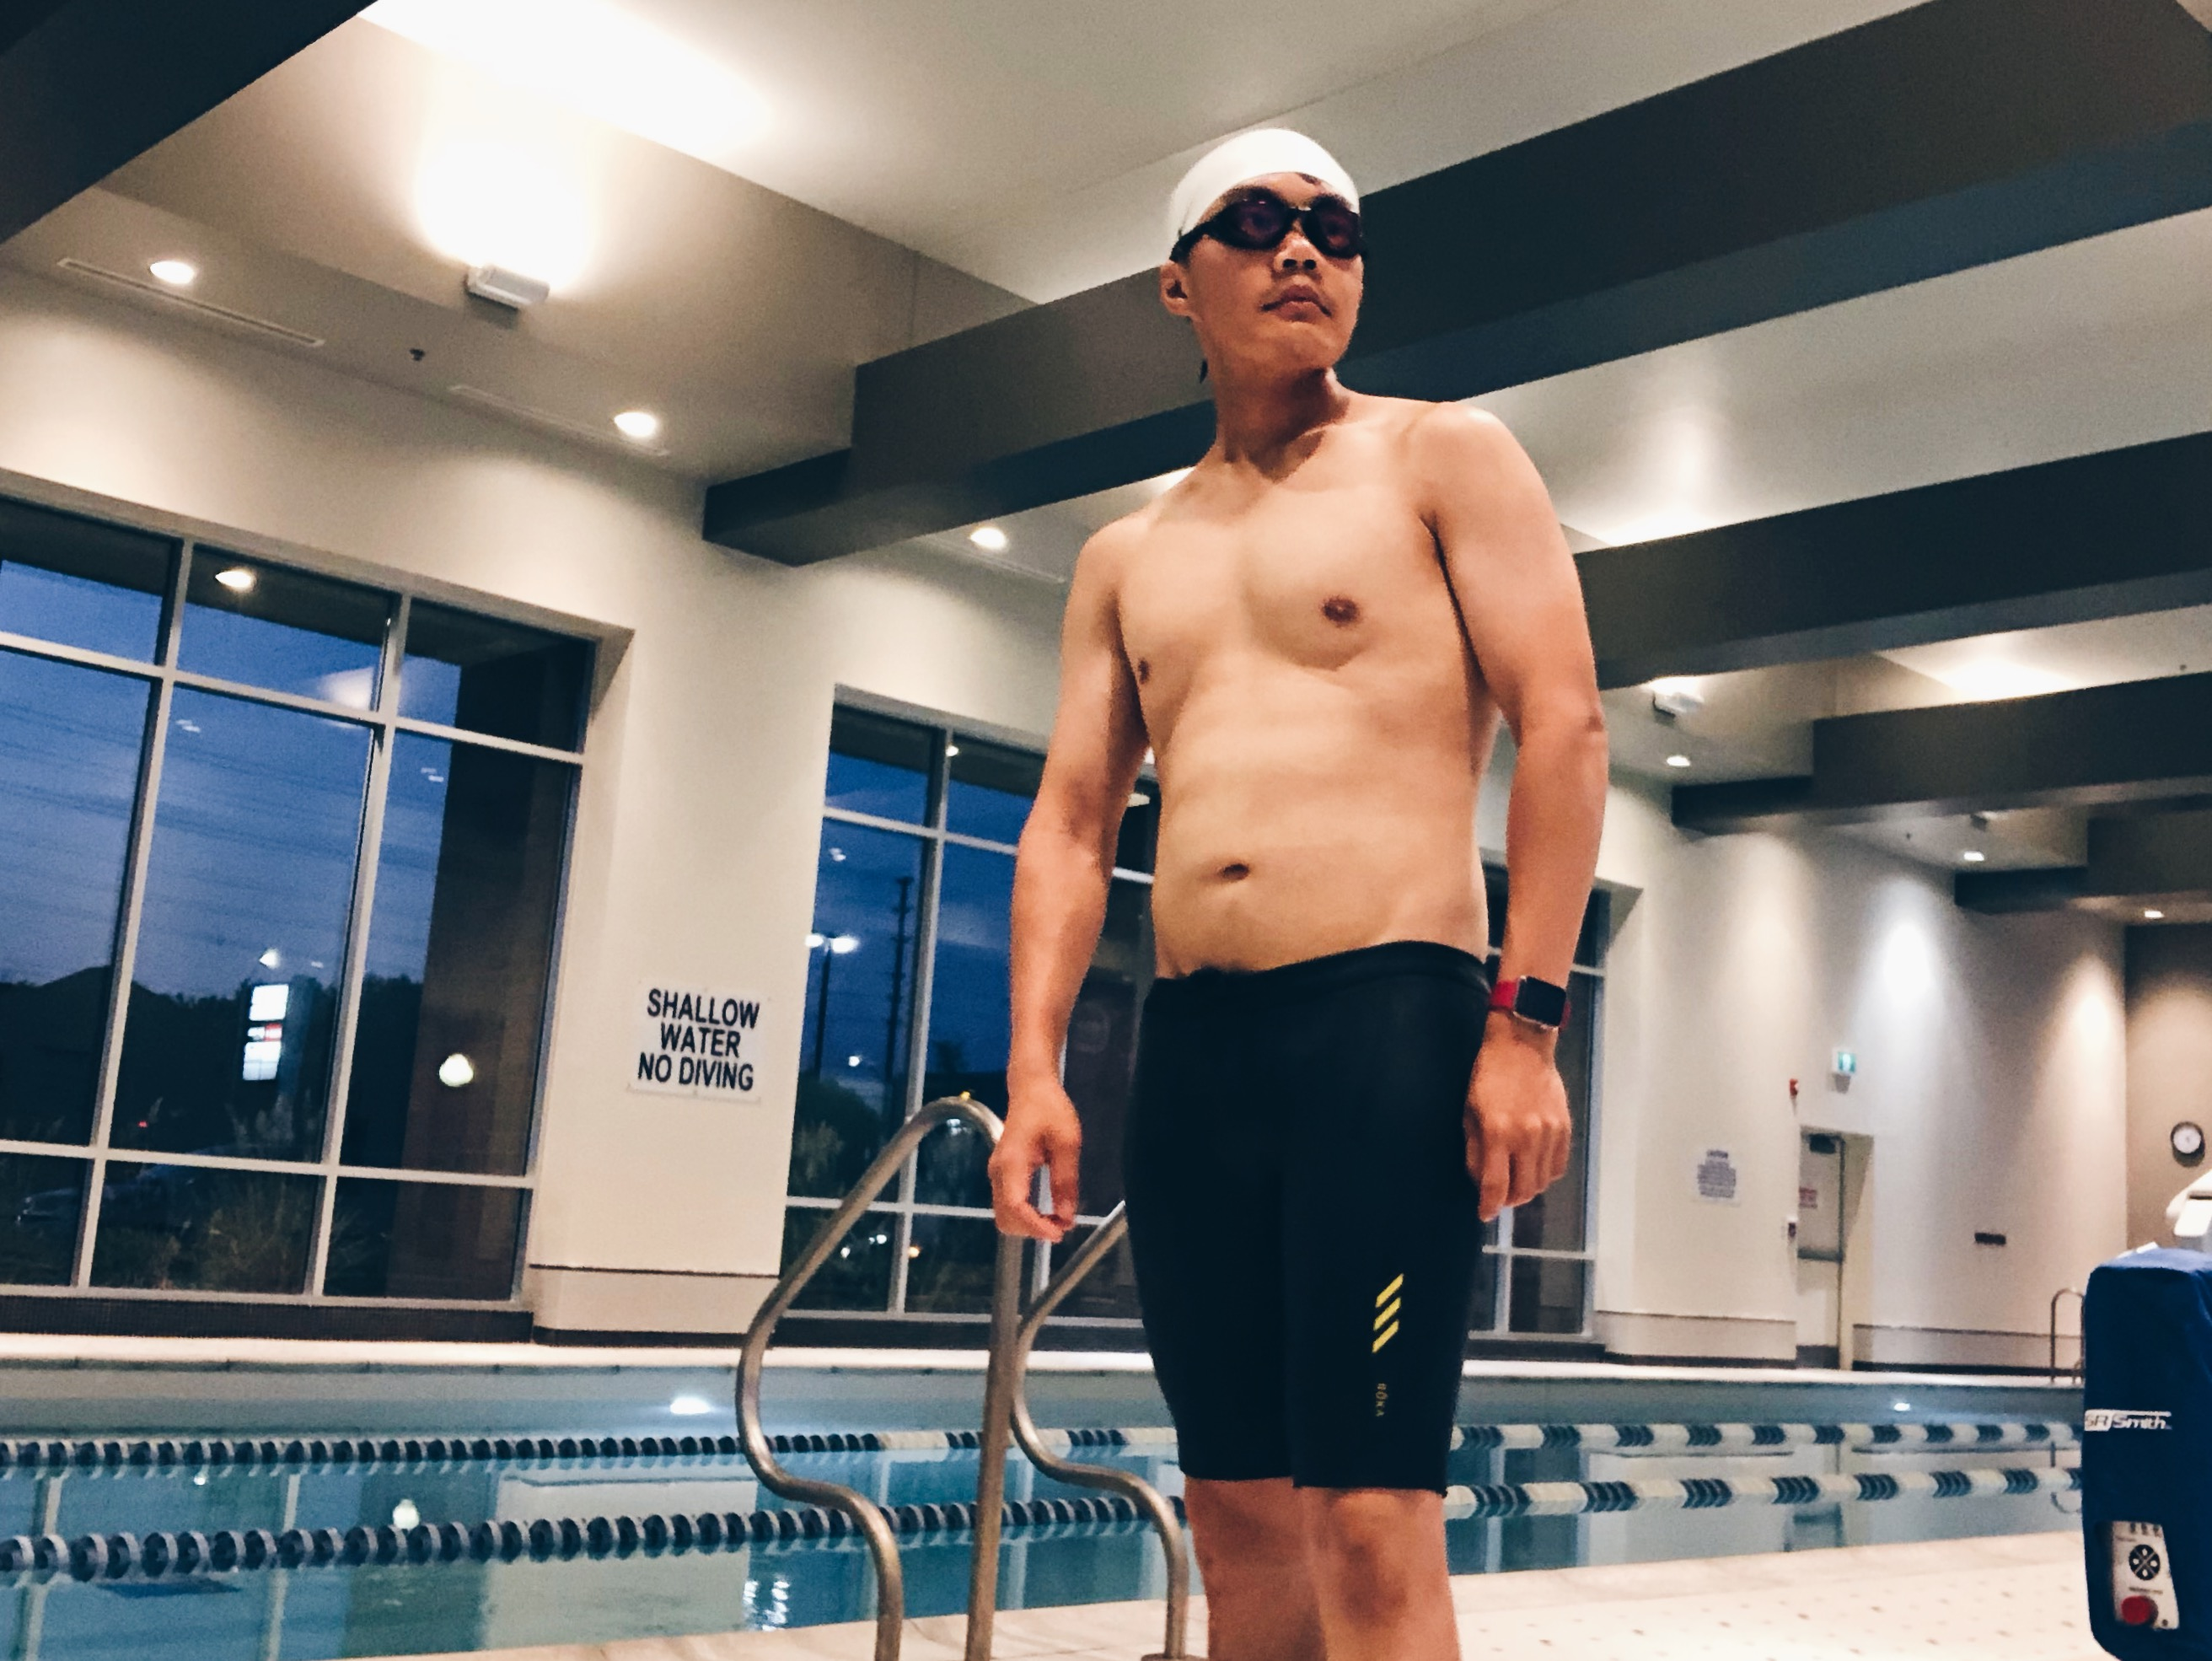 53a7f17637 If you've been following me along, you've seen that I've been running, and  now I'm getting back into swimming.